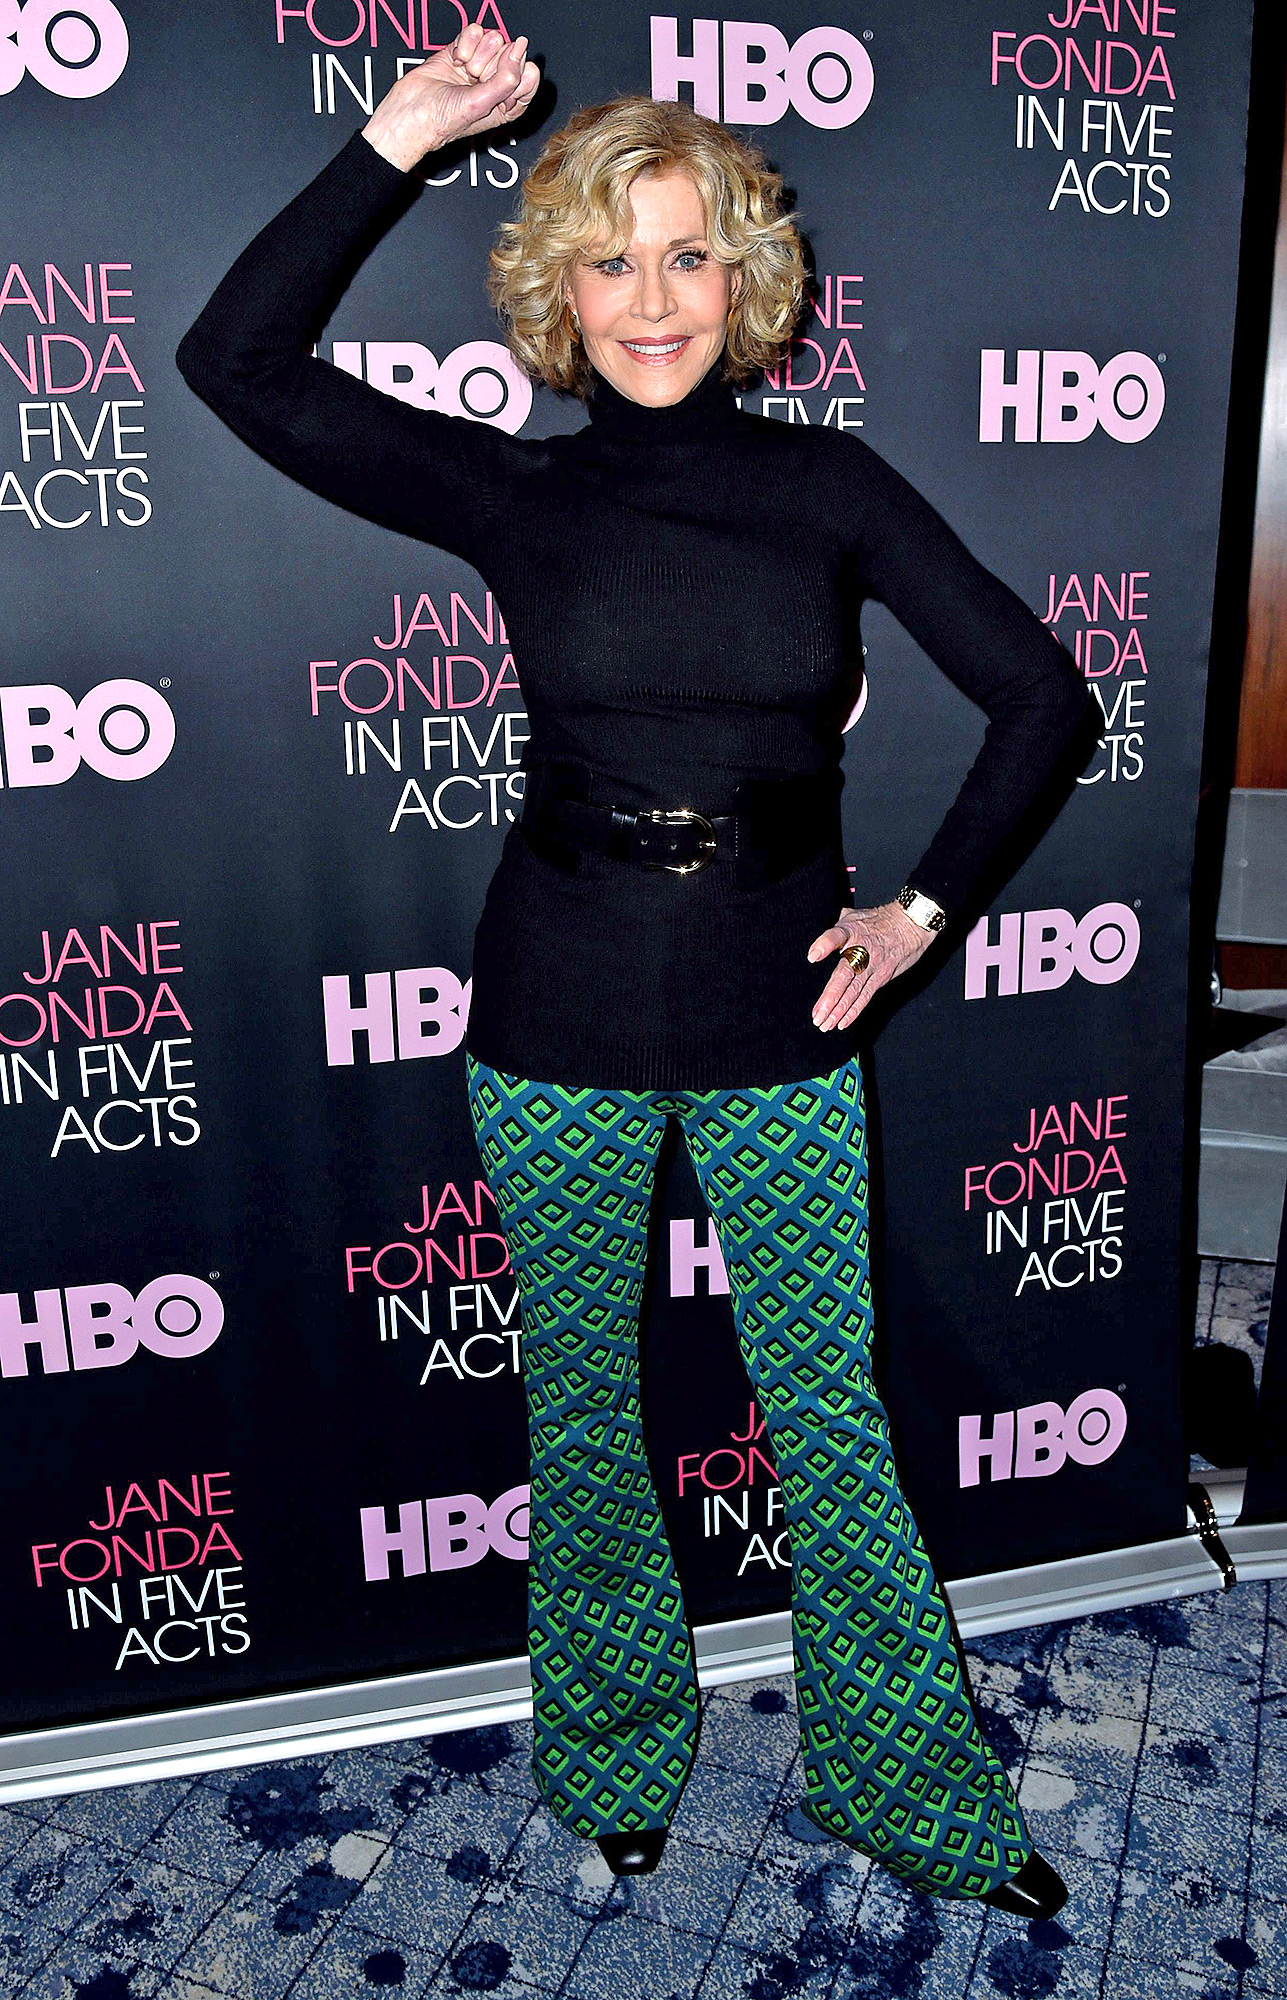 'Jane Fonda in Five Acts' film discussion, New York, USA - 20 Sep 2018